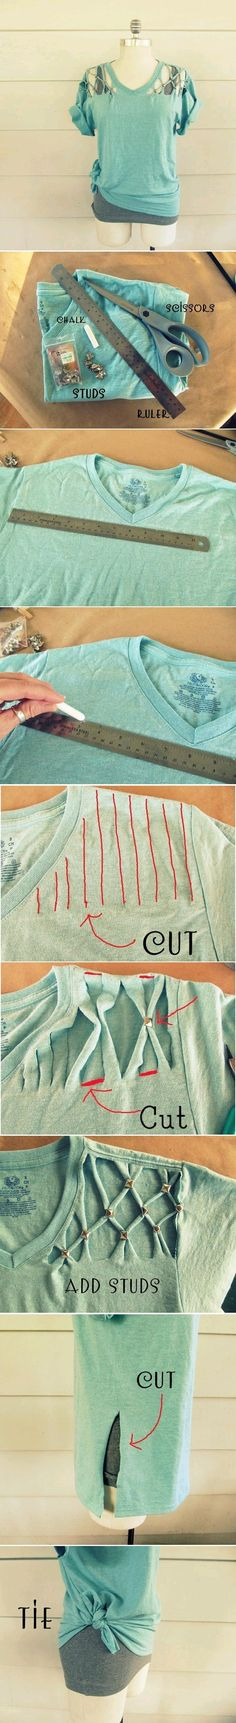 DIY Cool Studded T Shirt DIY Cool Studded T Shirt